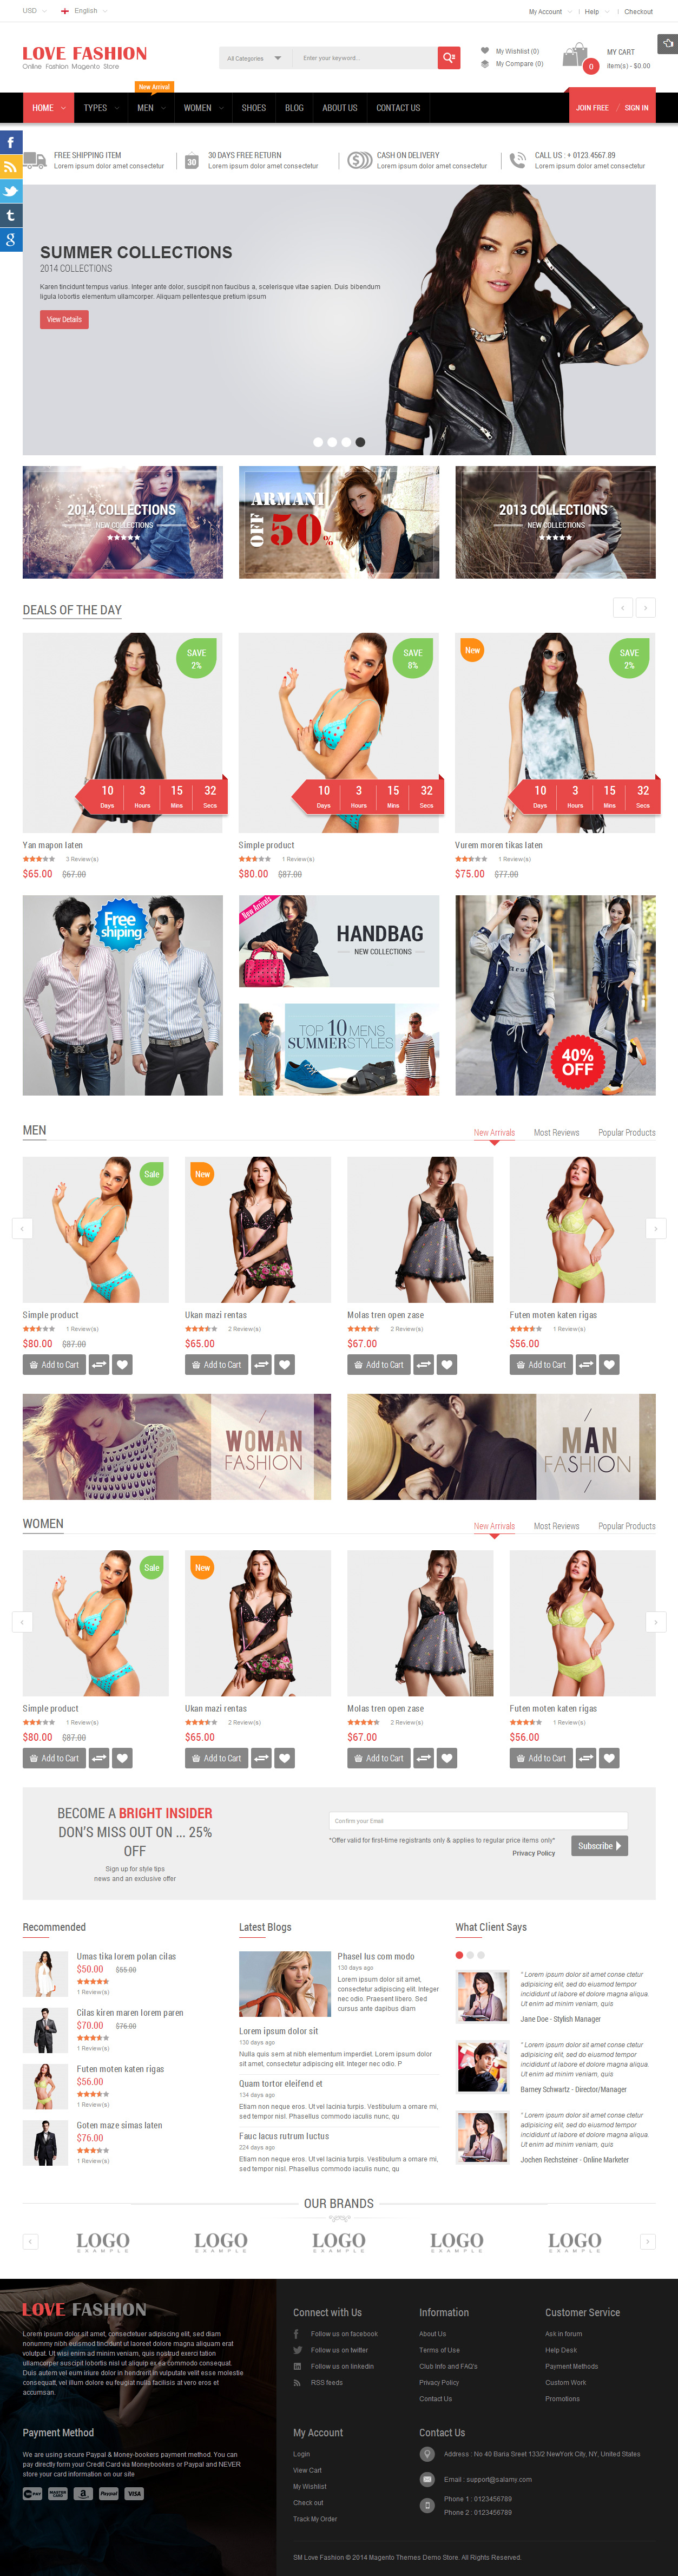 Musthaves & Fashion shop je online. - m 69